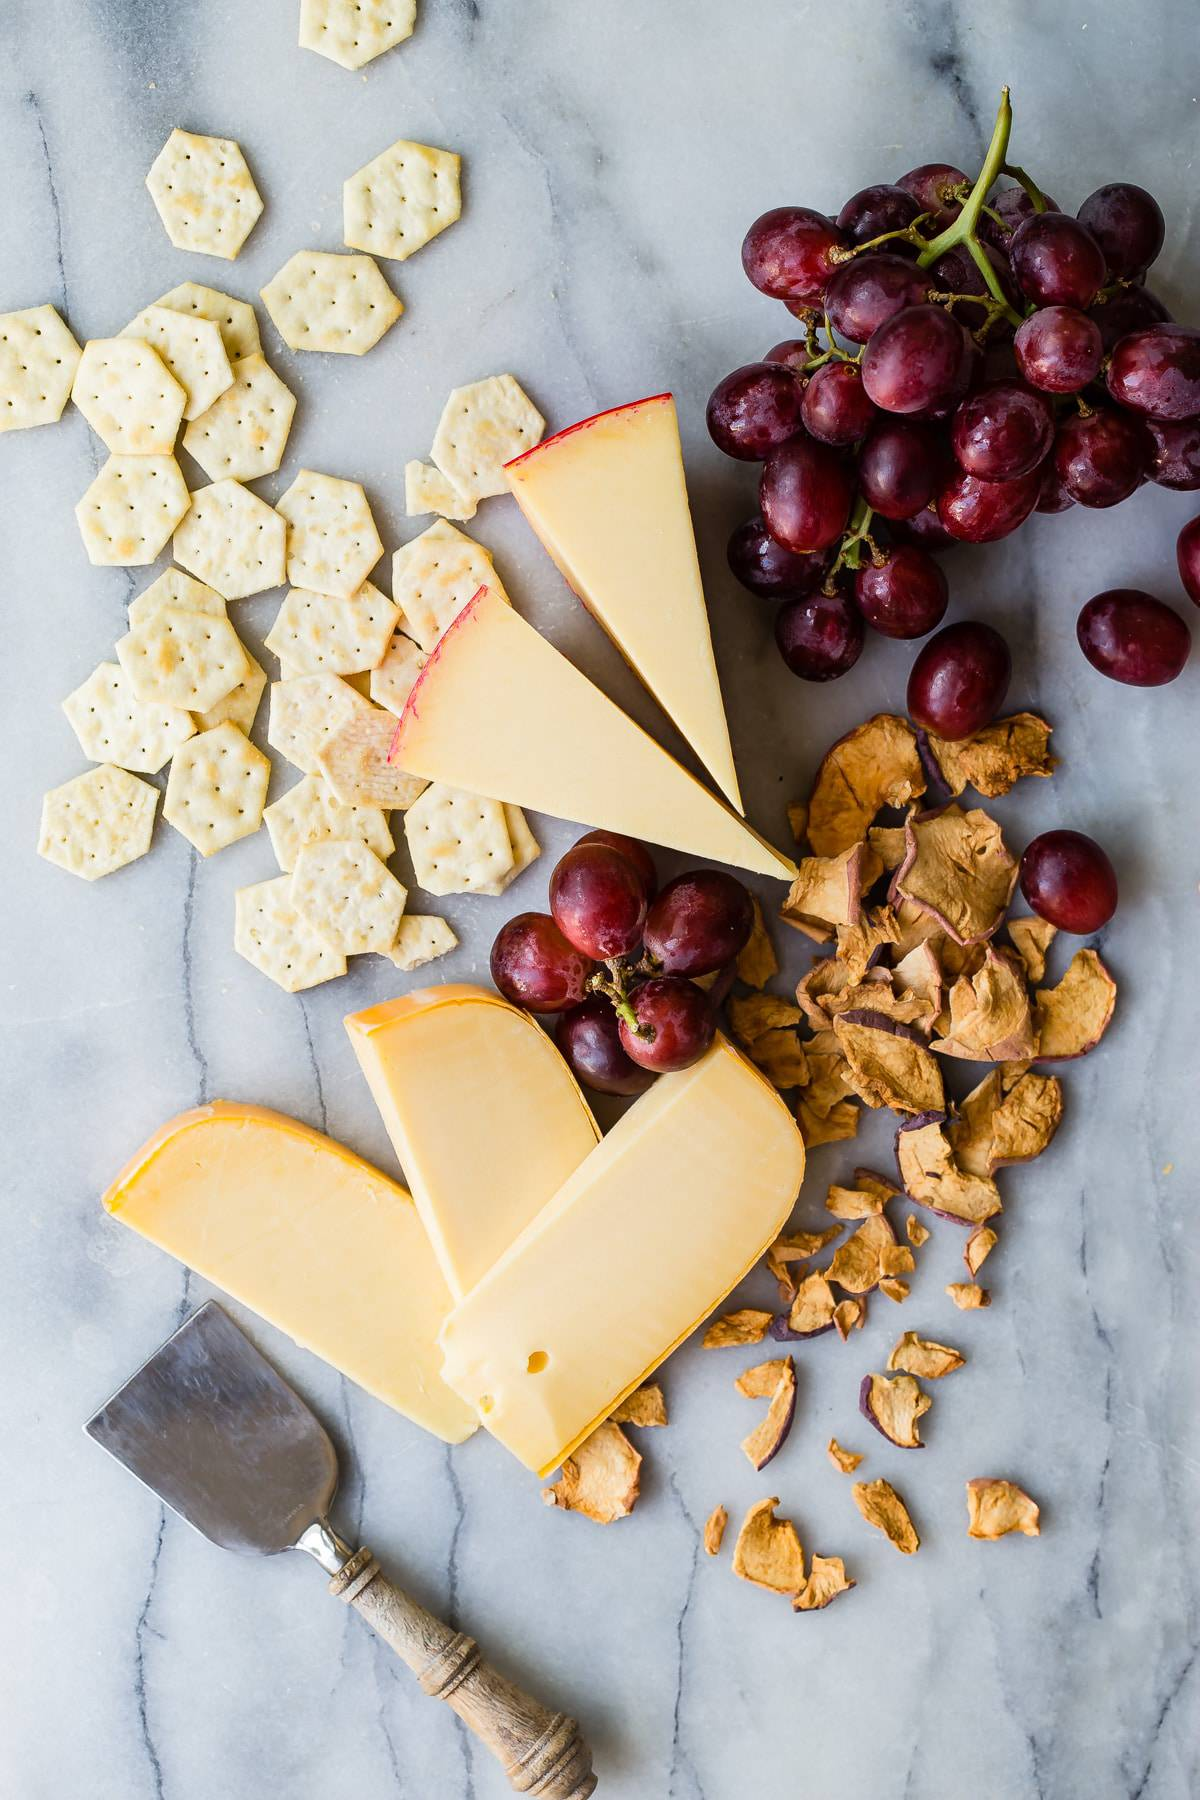 Two different kinds of Gouda cheese for a cheese board.